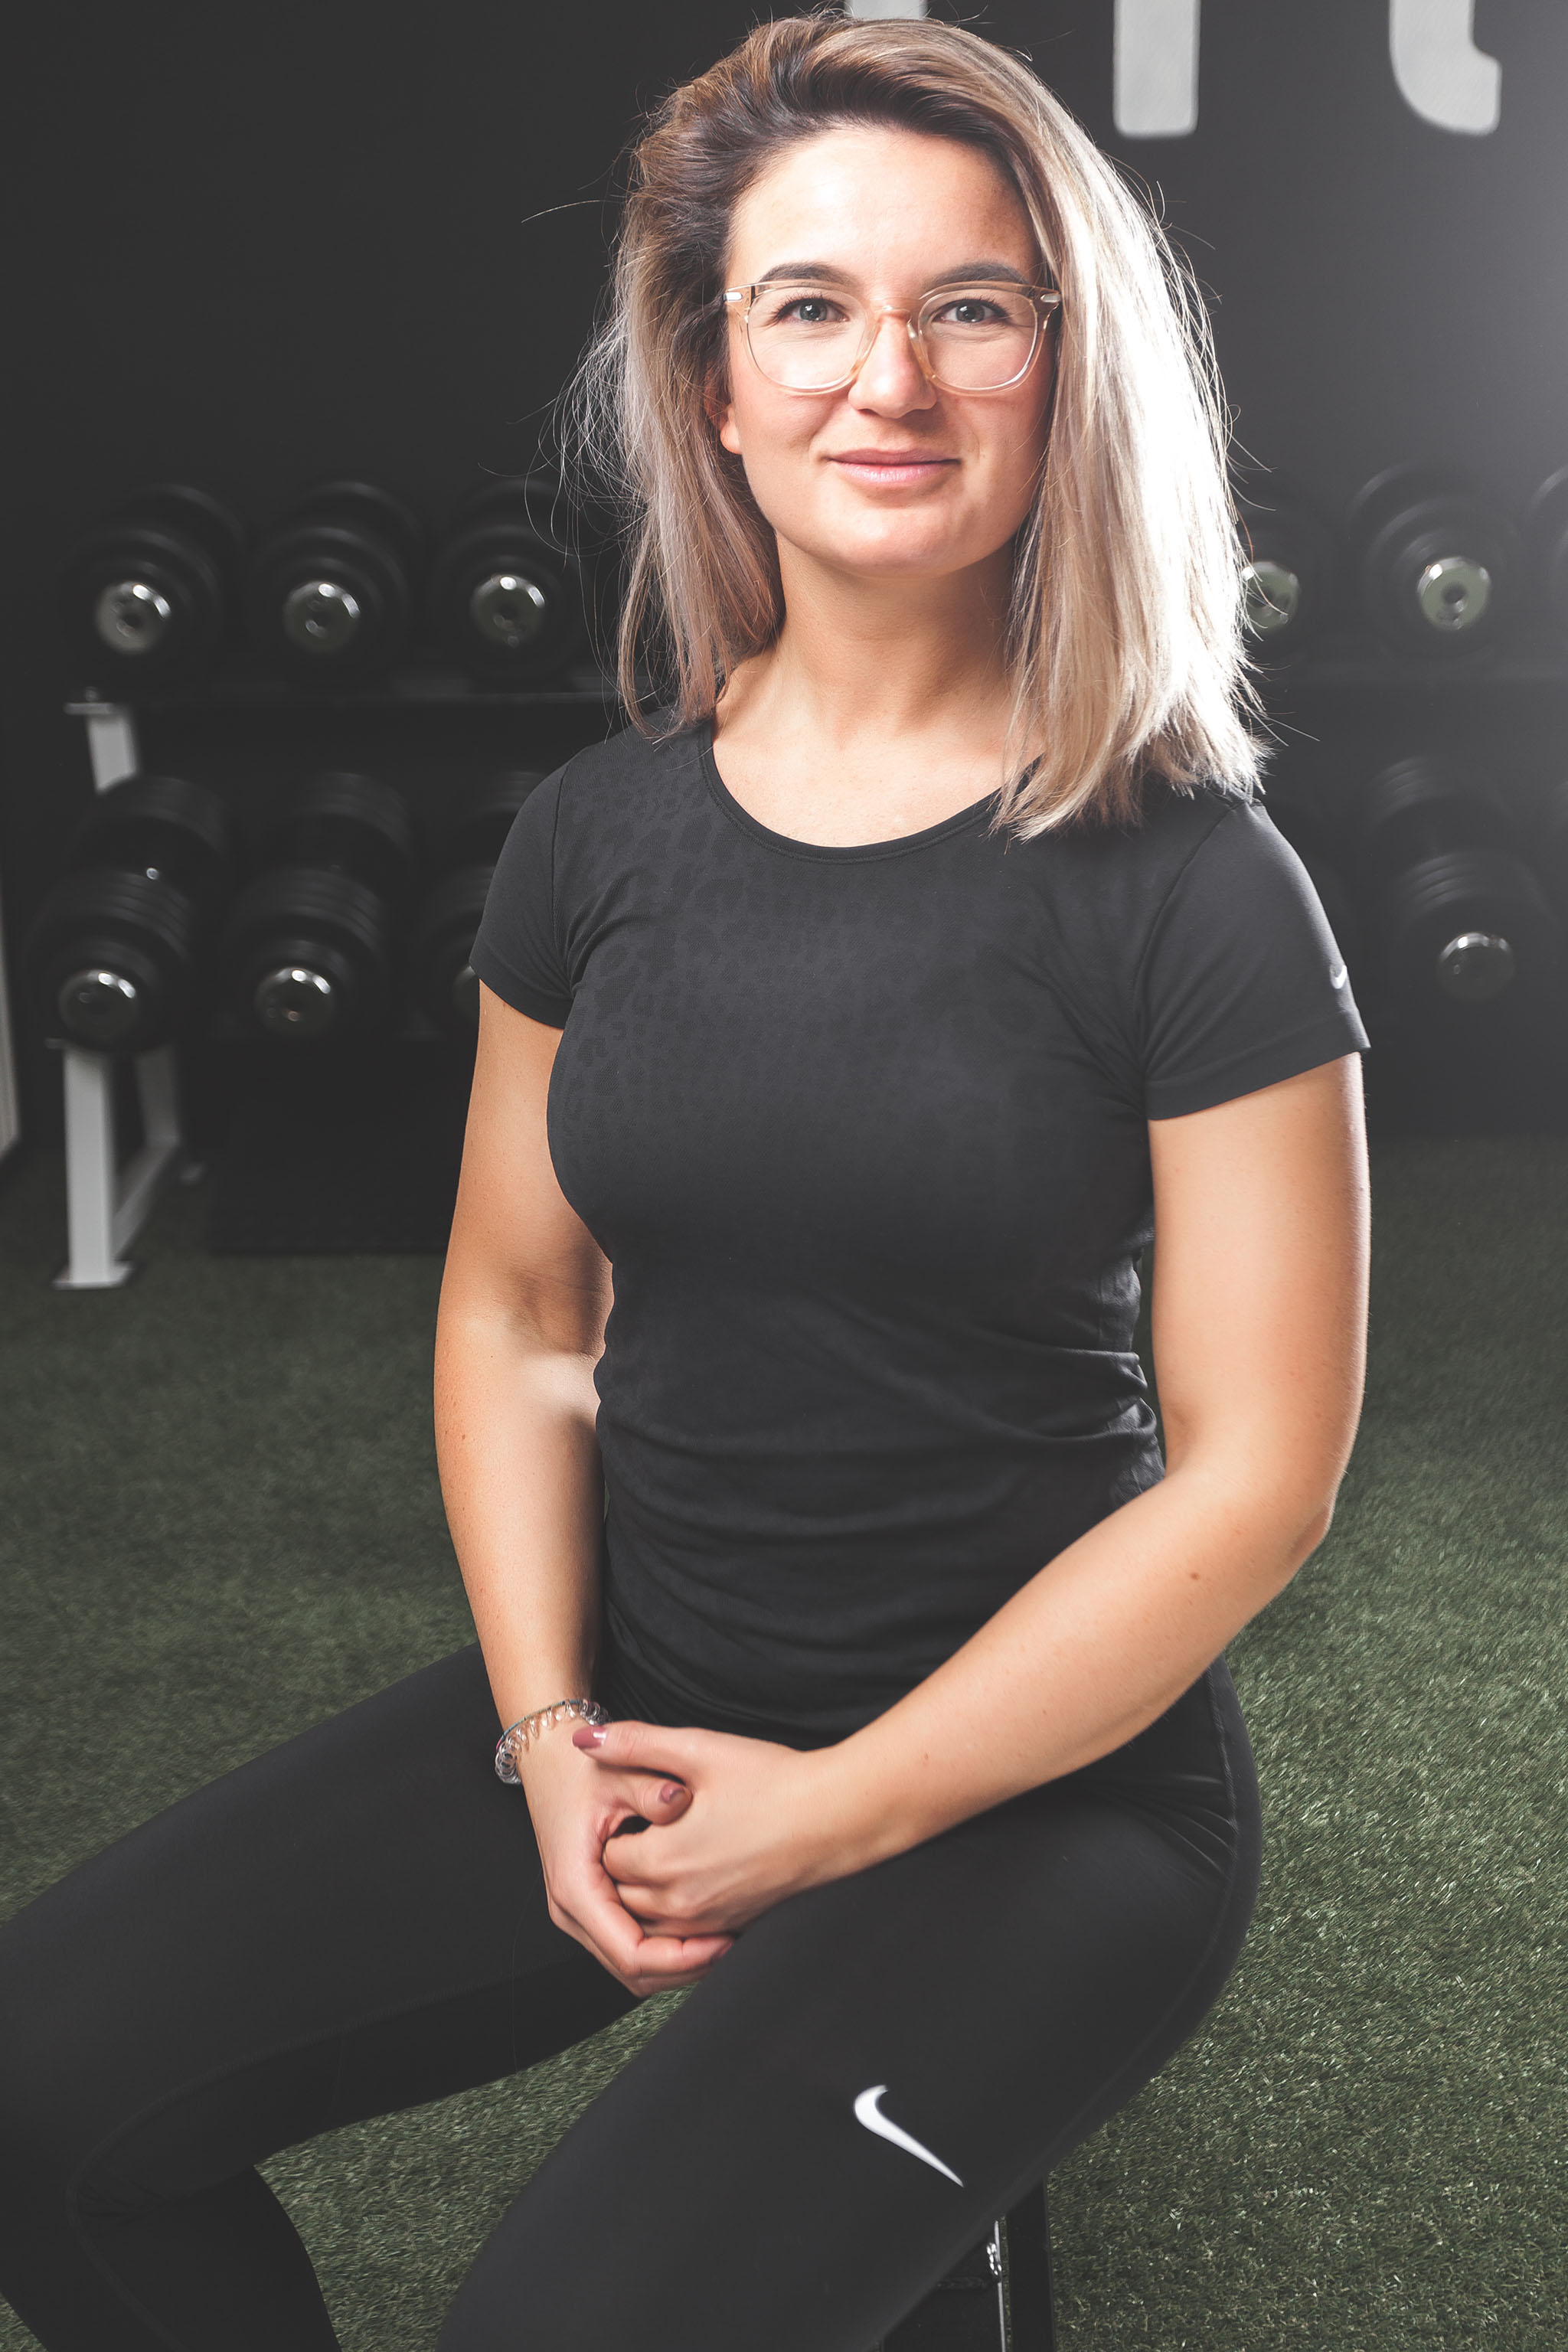 Fitlab Personal Trainer Paloma